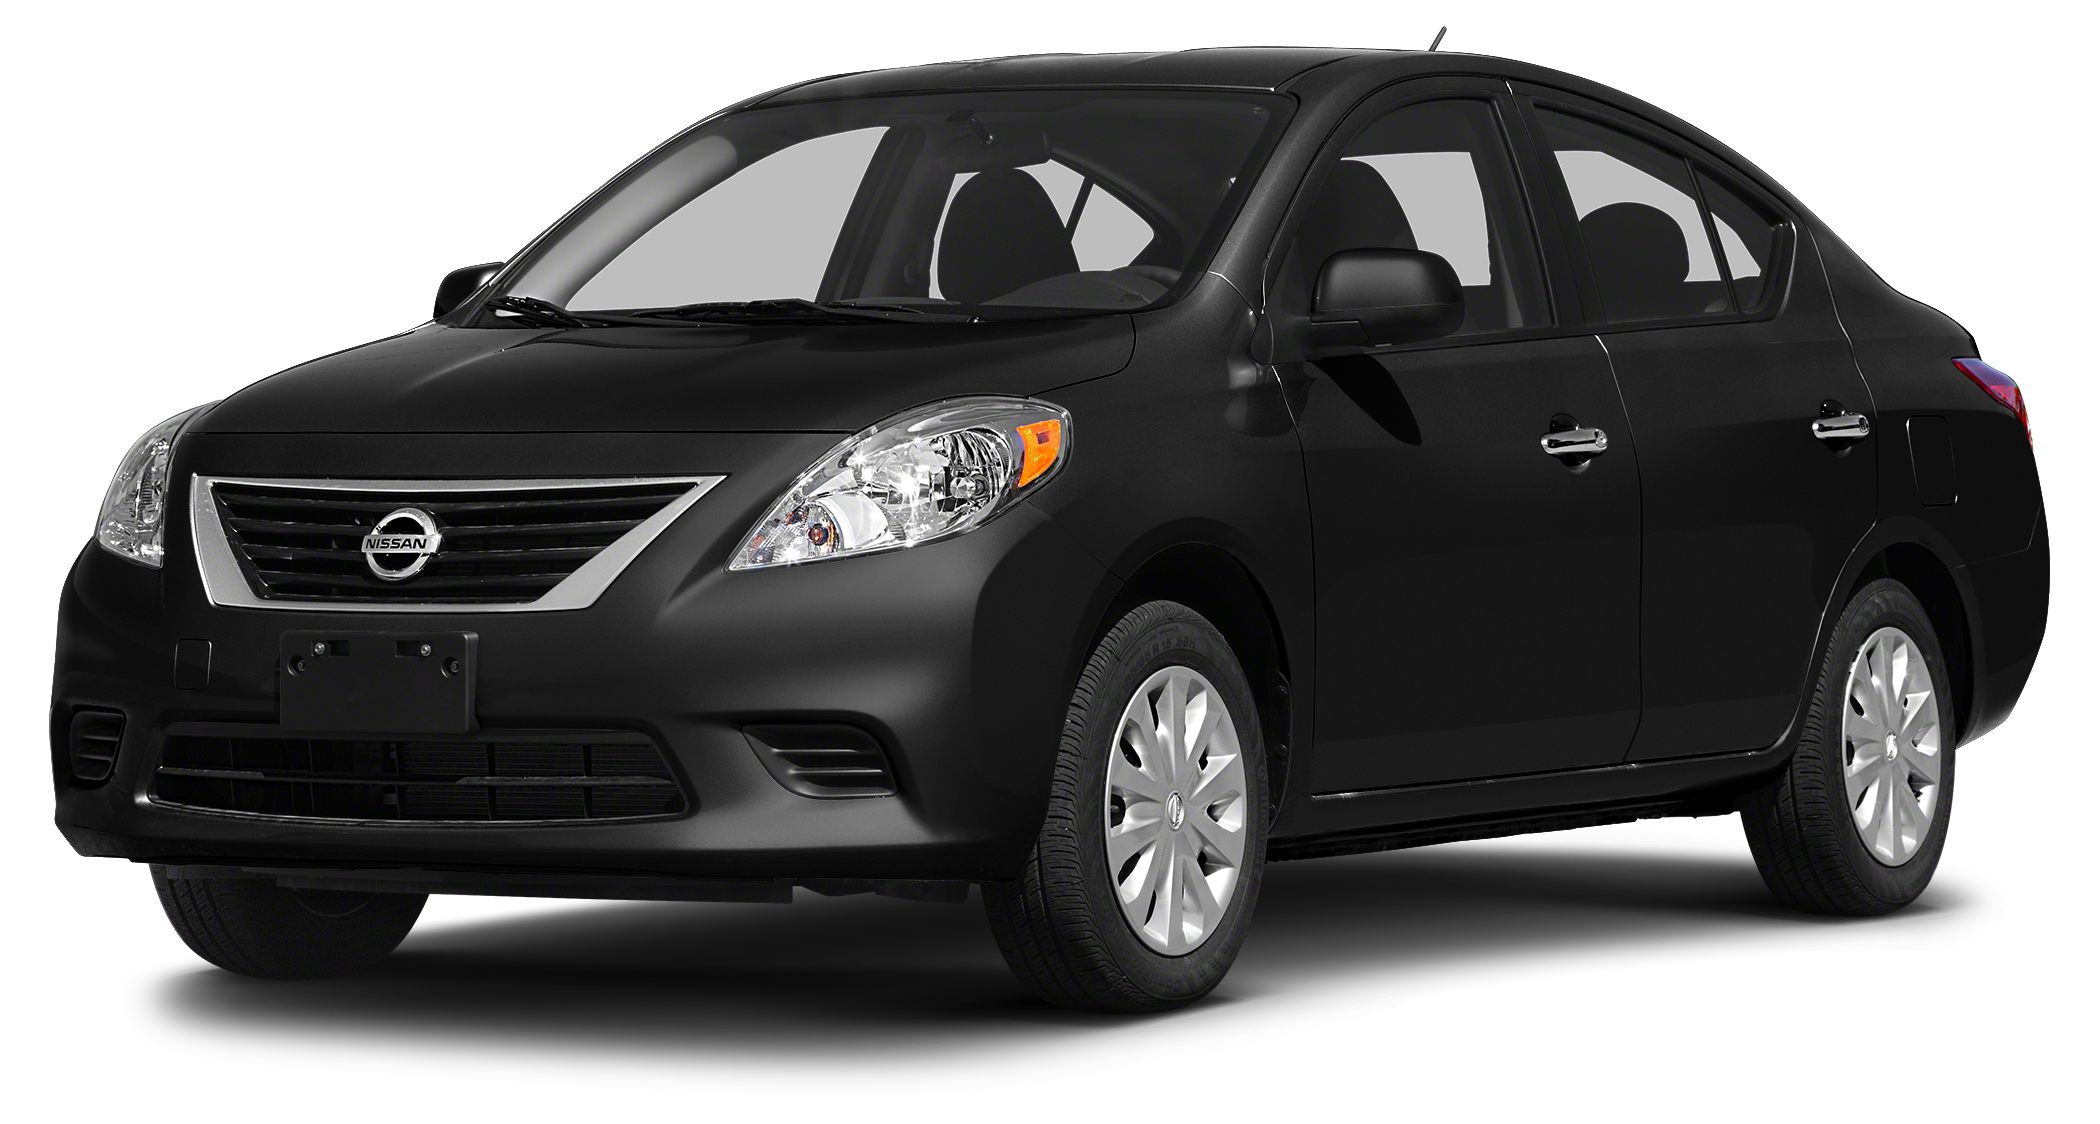 2014 Nissan Versa 16 S Miles 32386Color Super Black Stock 15S863B VIN 3N1CN7AP5EL858970